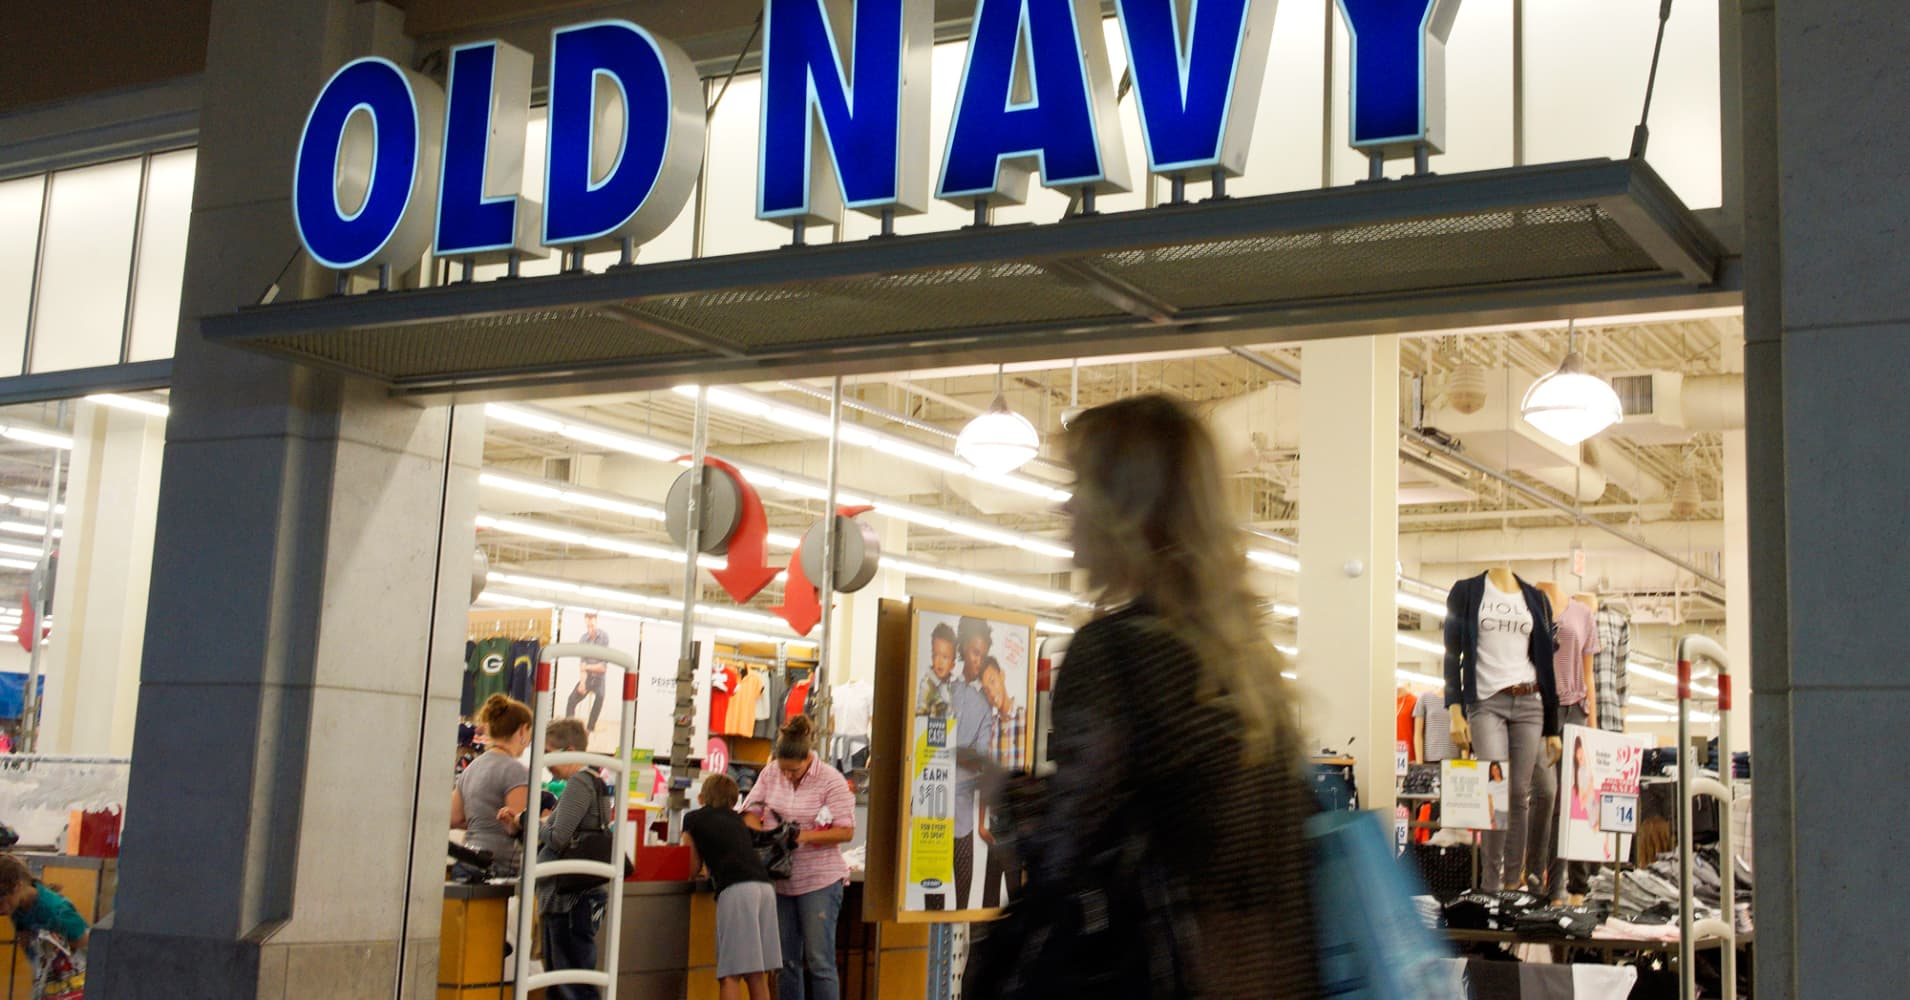 Old Navy To Open 60 Stores This Year, Driving Gap's Growth